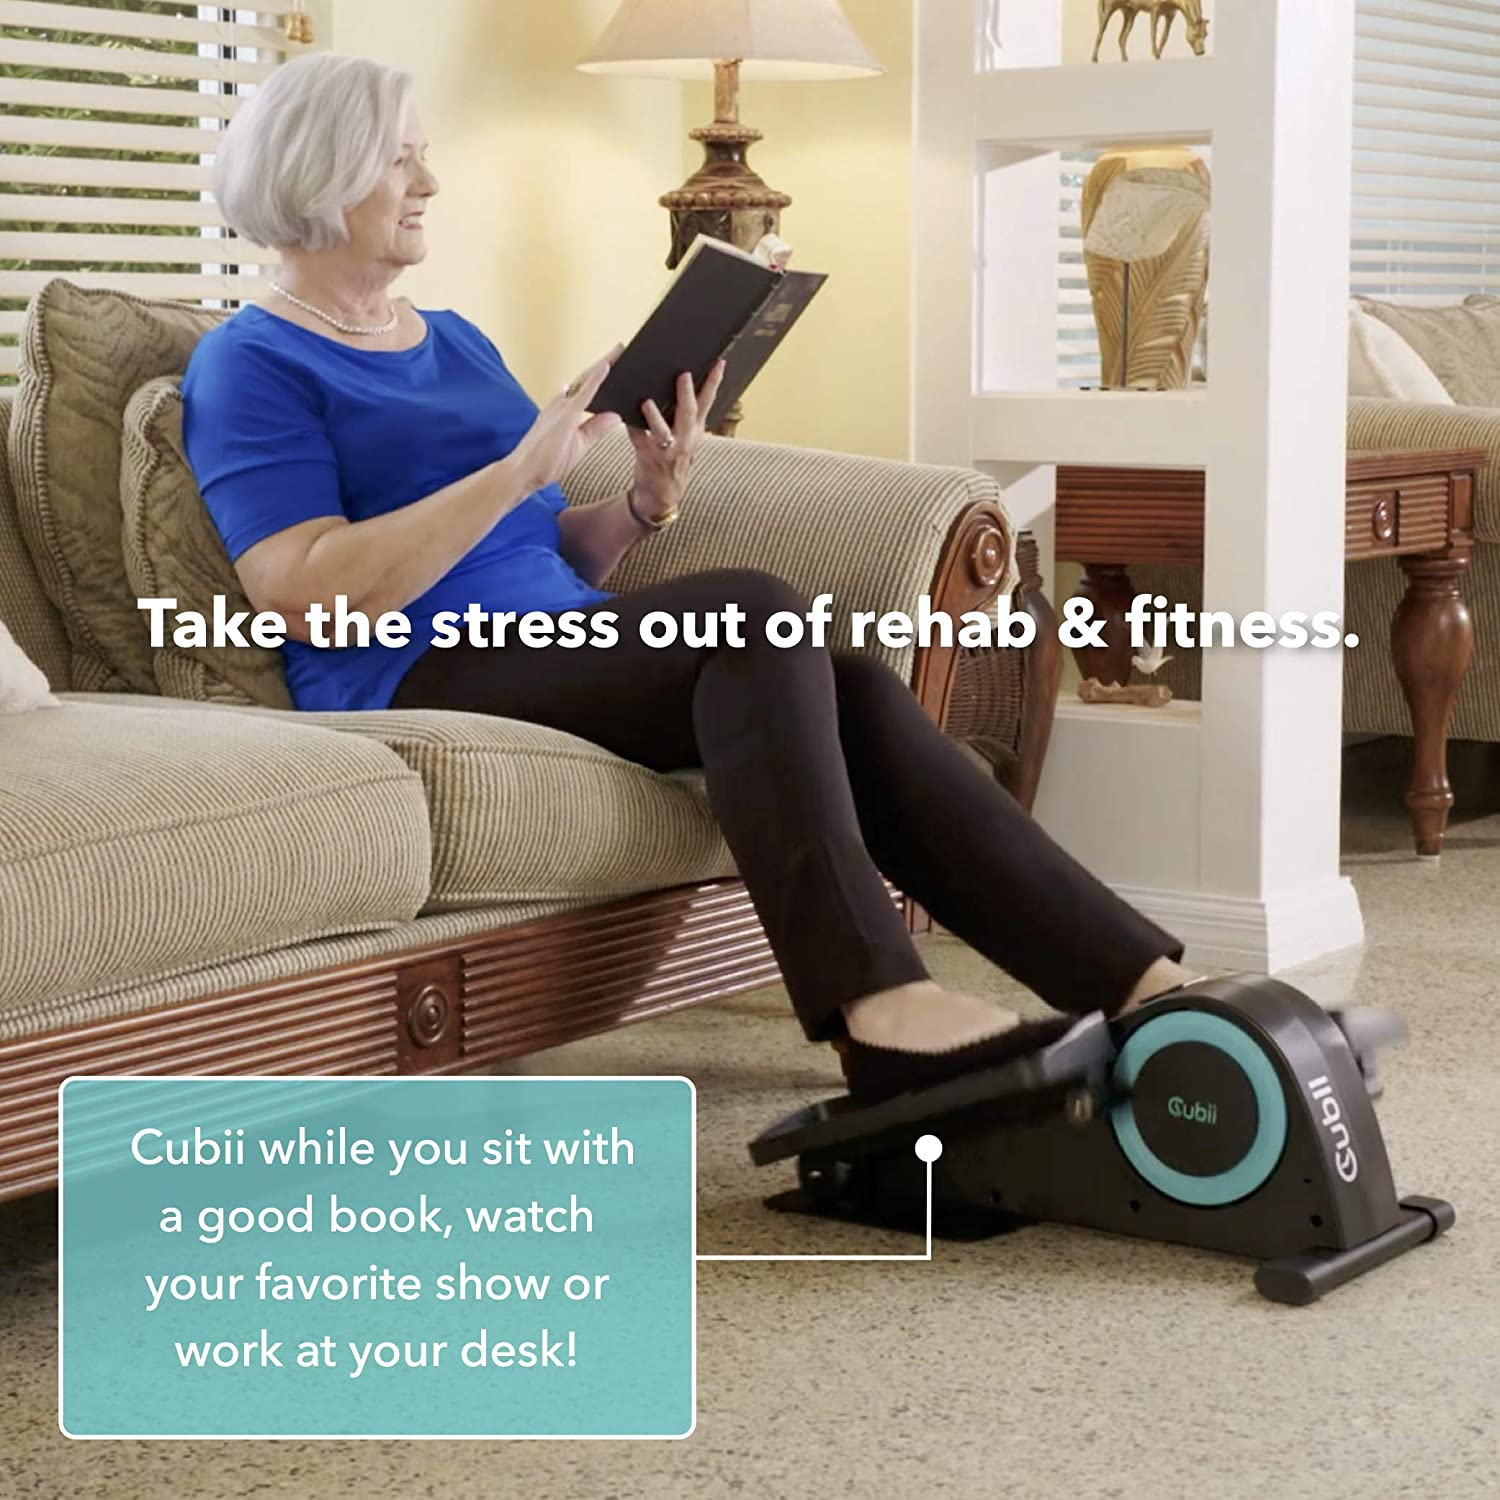 Cubii Jr Stress Rehab Fitness